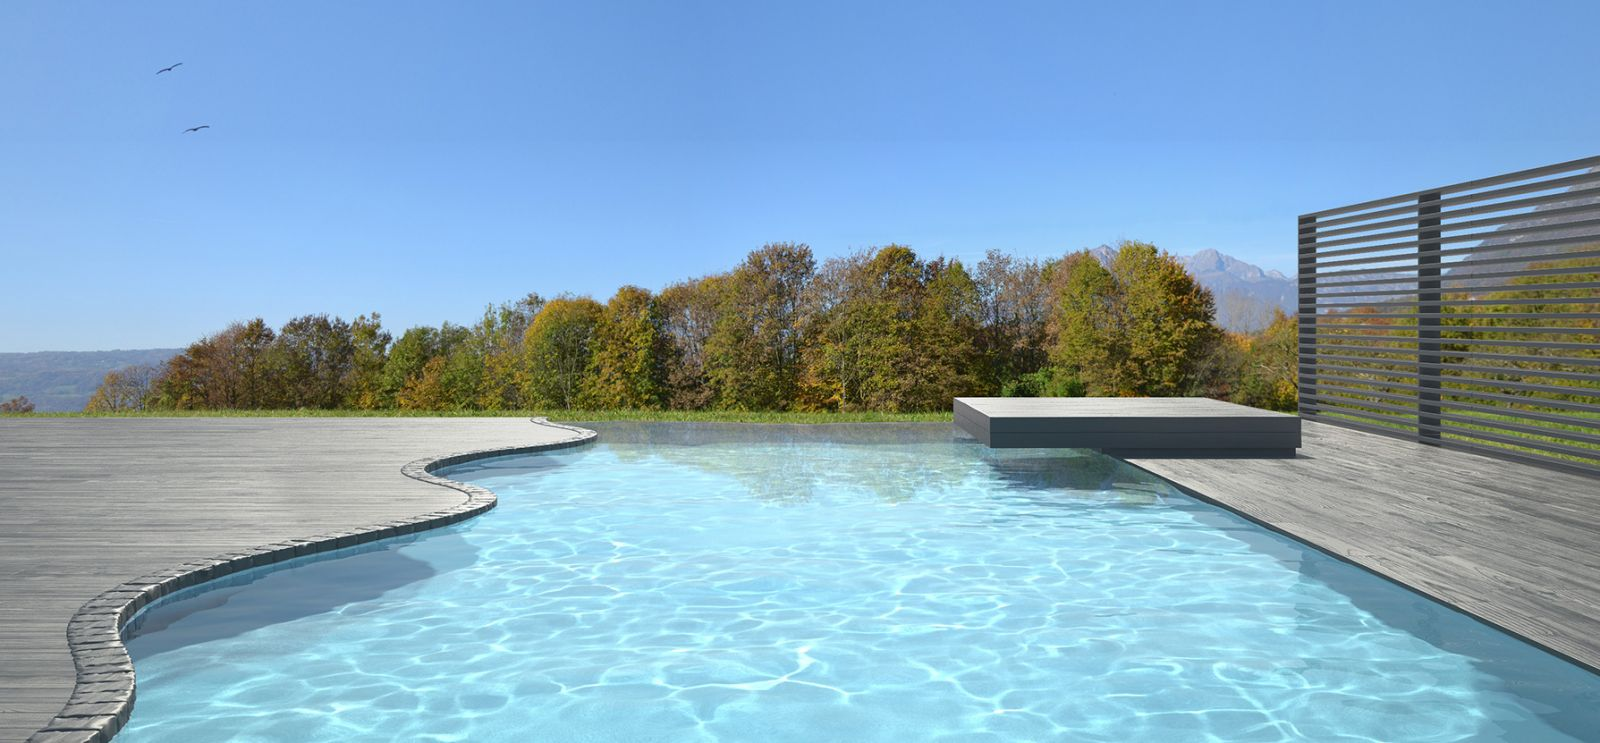 infinity pools melbourne infinity pool builders eco pools and spas. Black Bedroom Furniture Sets. Home Design Ideas